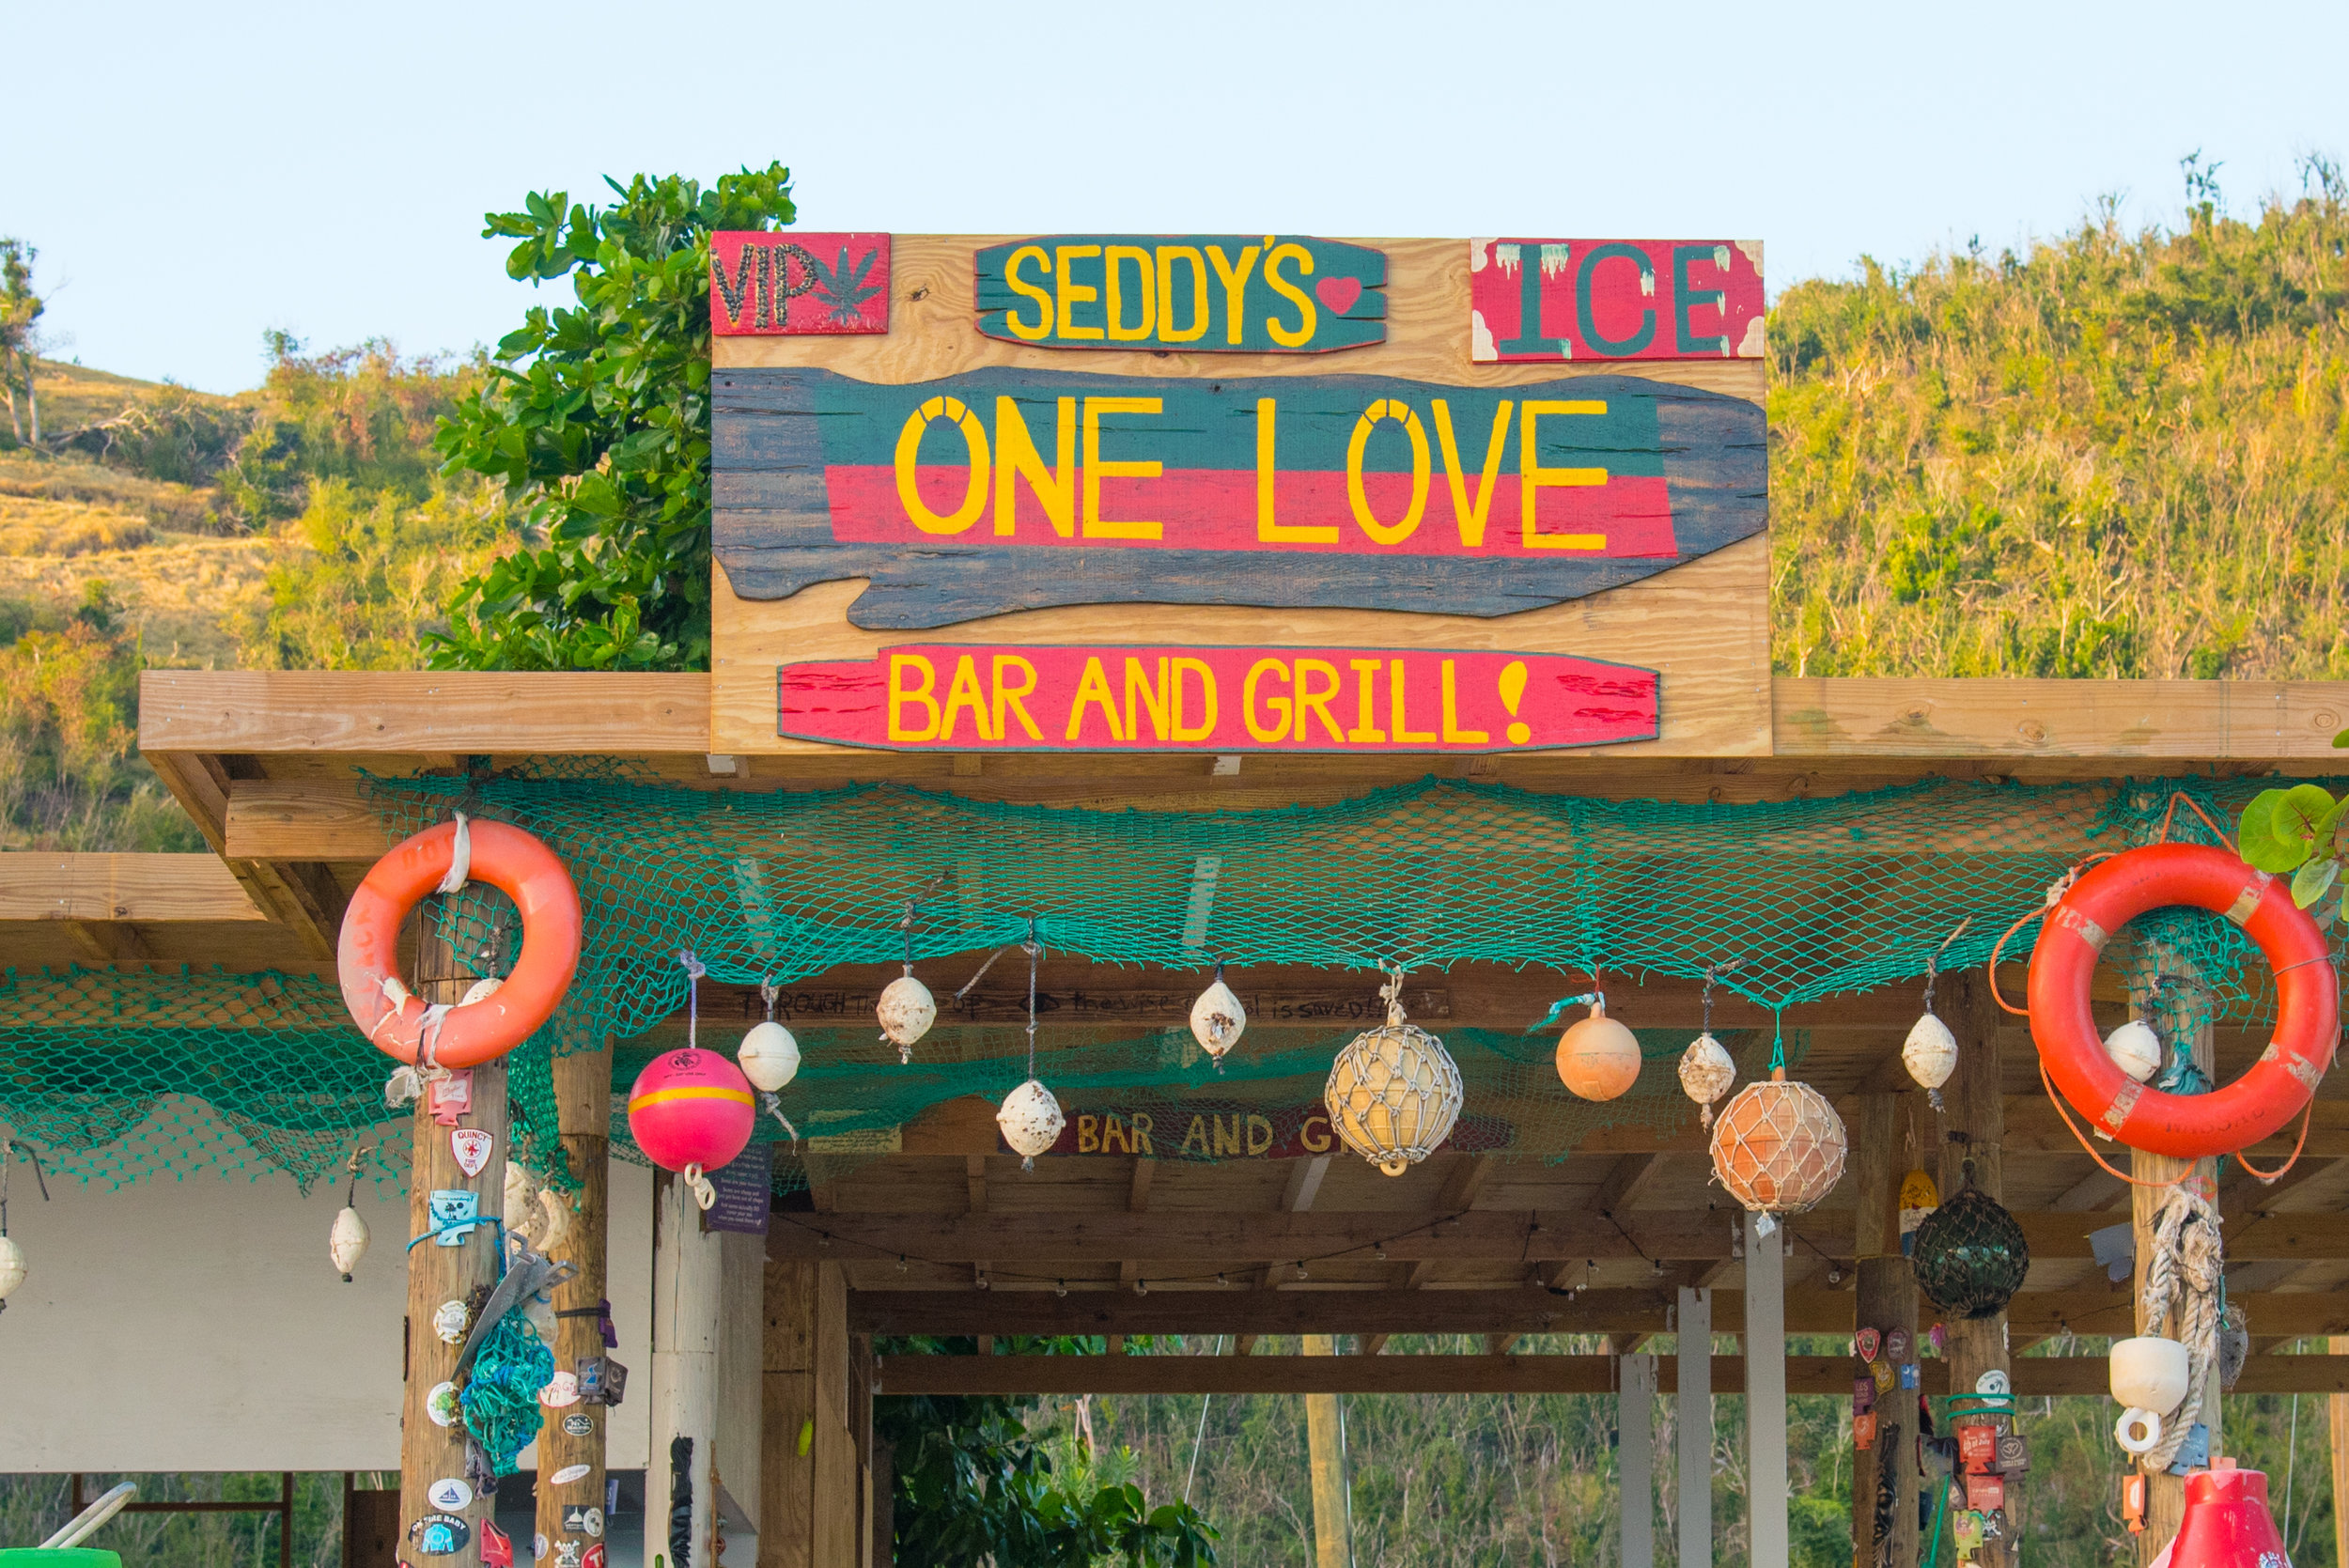 One Love Bar & Grill - Just steps down White Bay beach from the Soggy Dollar Bar, Seddy Callwood's One Love Bar and Grill offers delicious drinks, friendly staff, and fresh-caught seafood. Our guests rave about the lobster dishes and the Bushwhackers and we concur! If you catch Seddy around, you might be surprised with a few magic tricks. It's a great place to relax in a somewhat quieter area of the beach. Visit the One Love site to learn more.